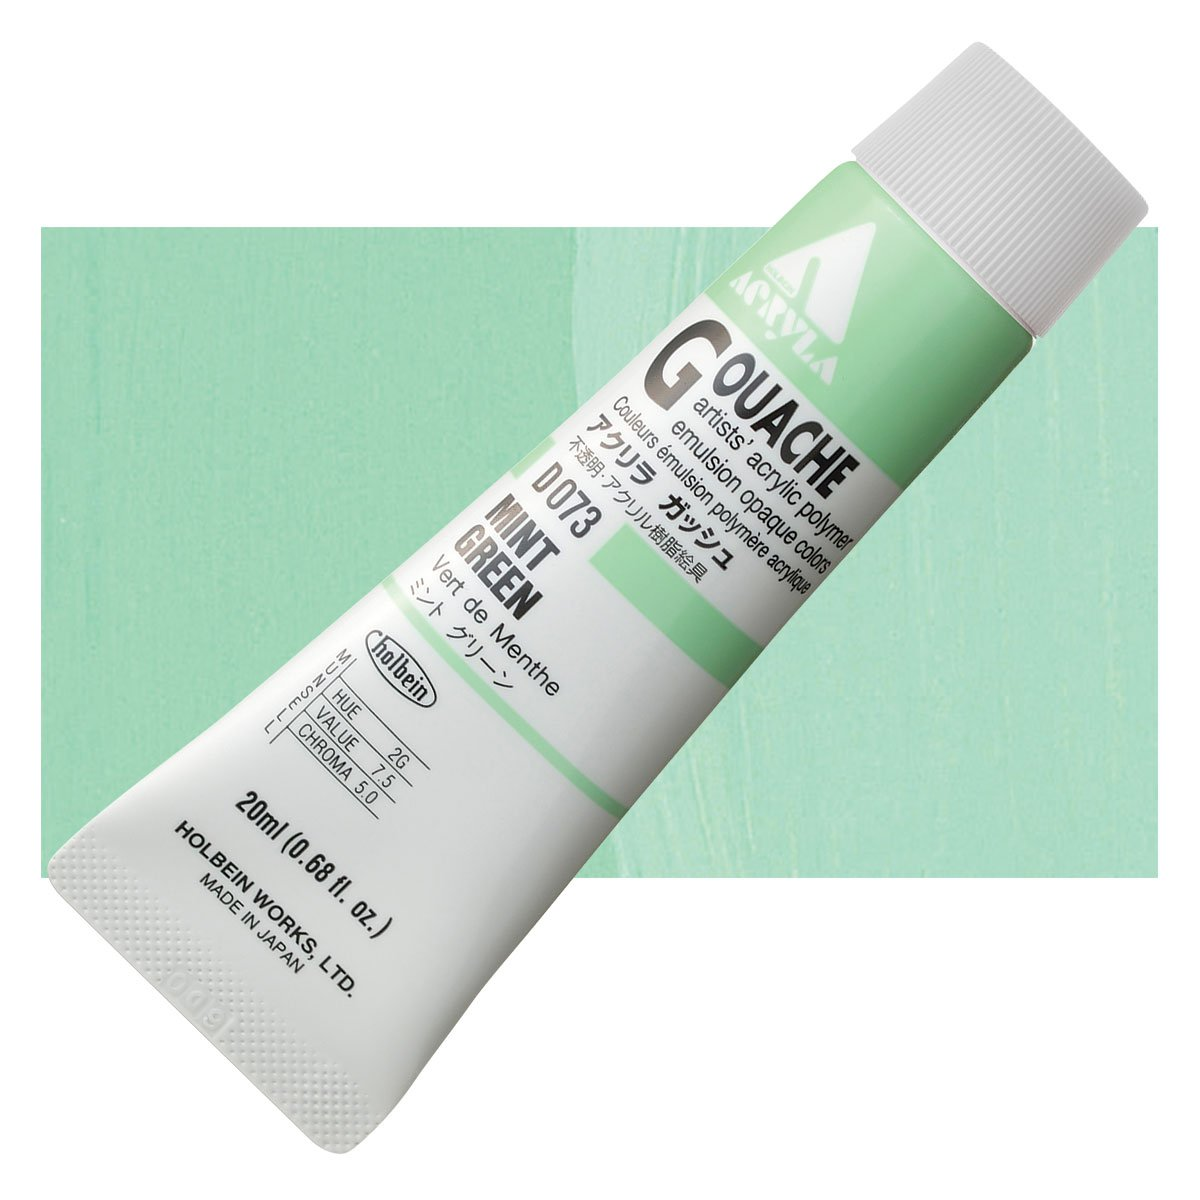 Holbein Acryla Gouache 20ml Tubes - Mint Green by Holbein - K. A. Artist Shop